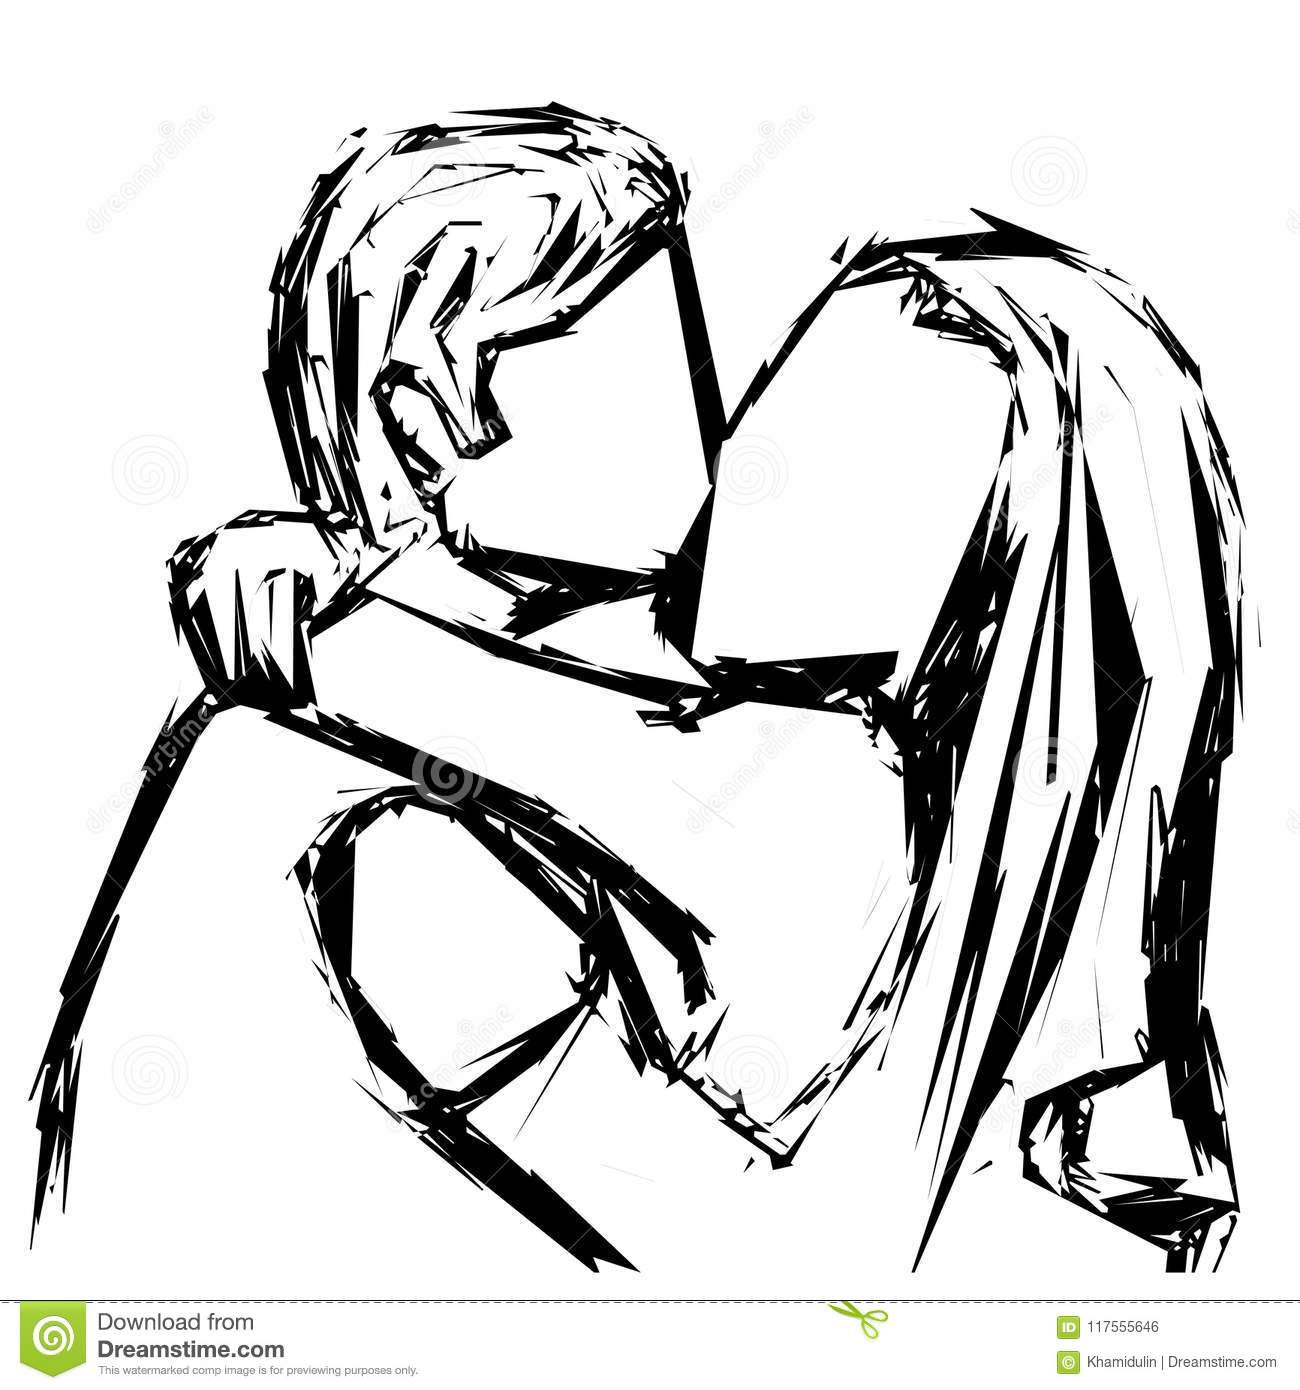 Sketch of a kissing couple in love with a gel pen vector